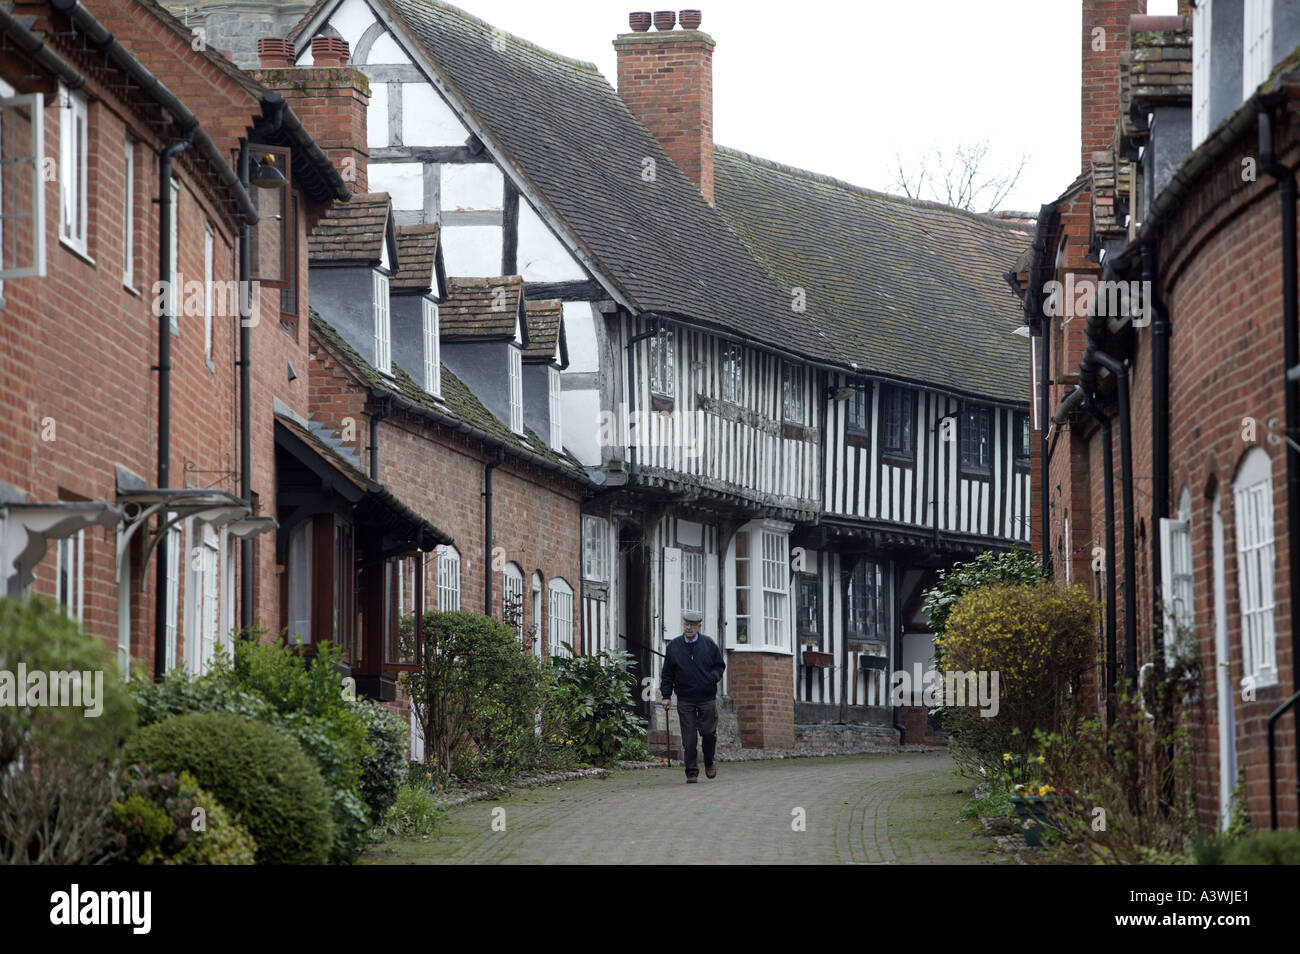 Malt Mill lane in the Warwickshire town of Alcester England